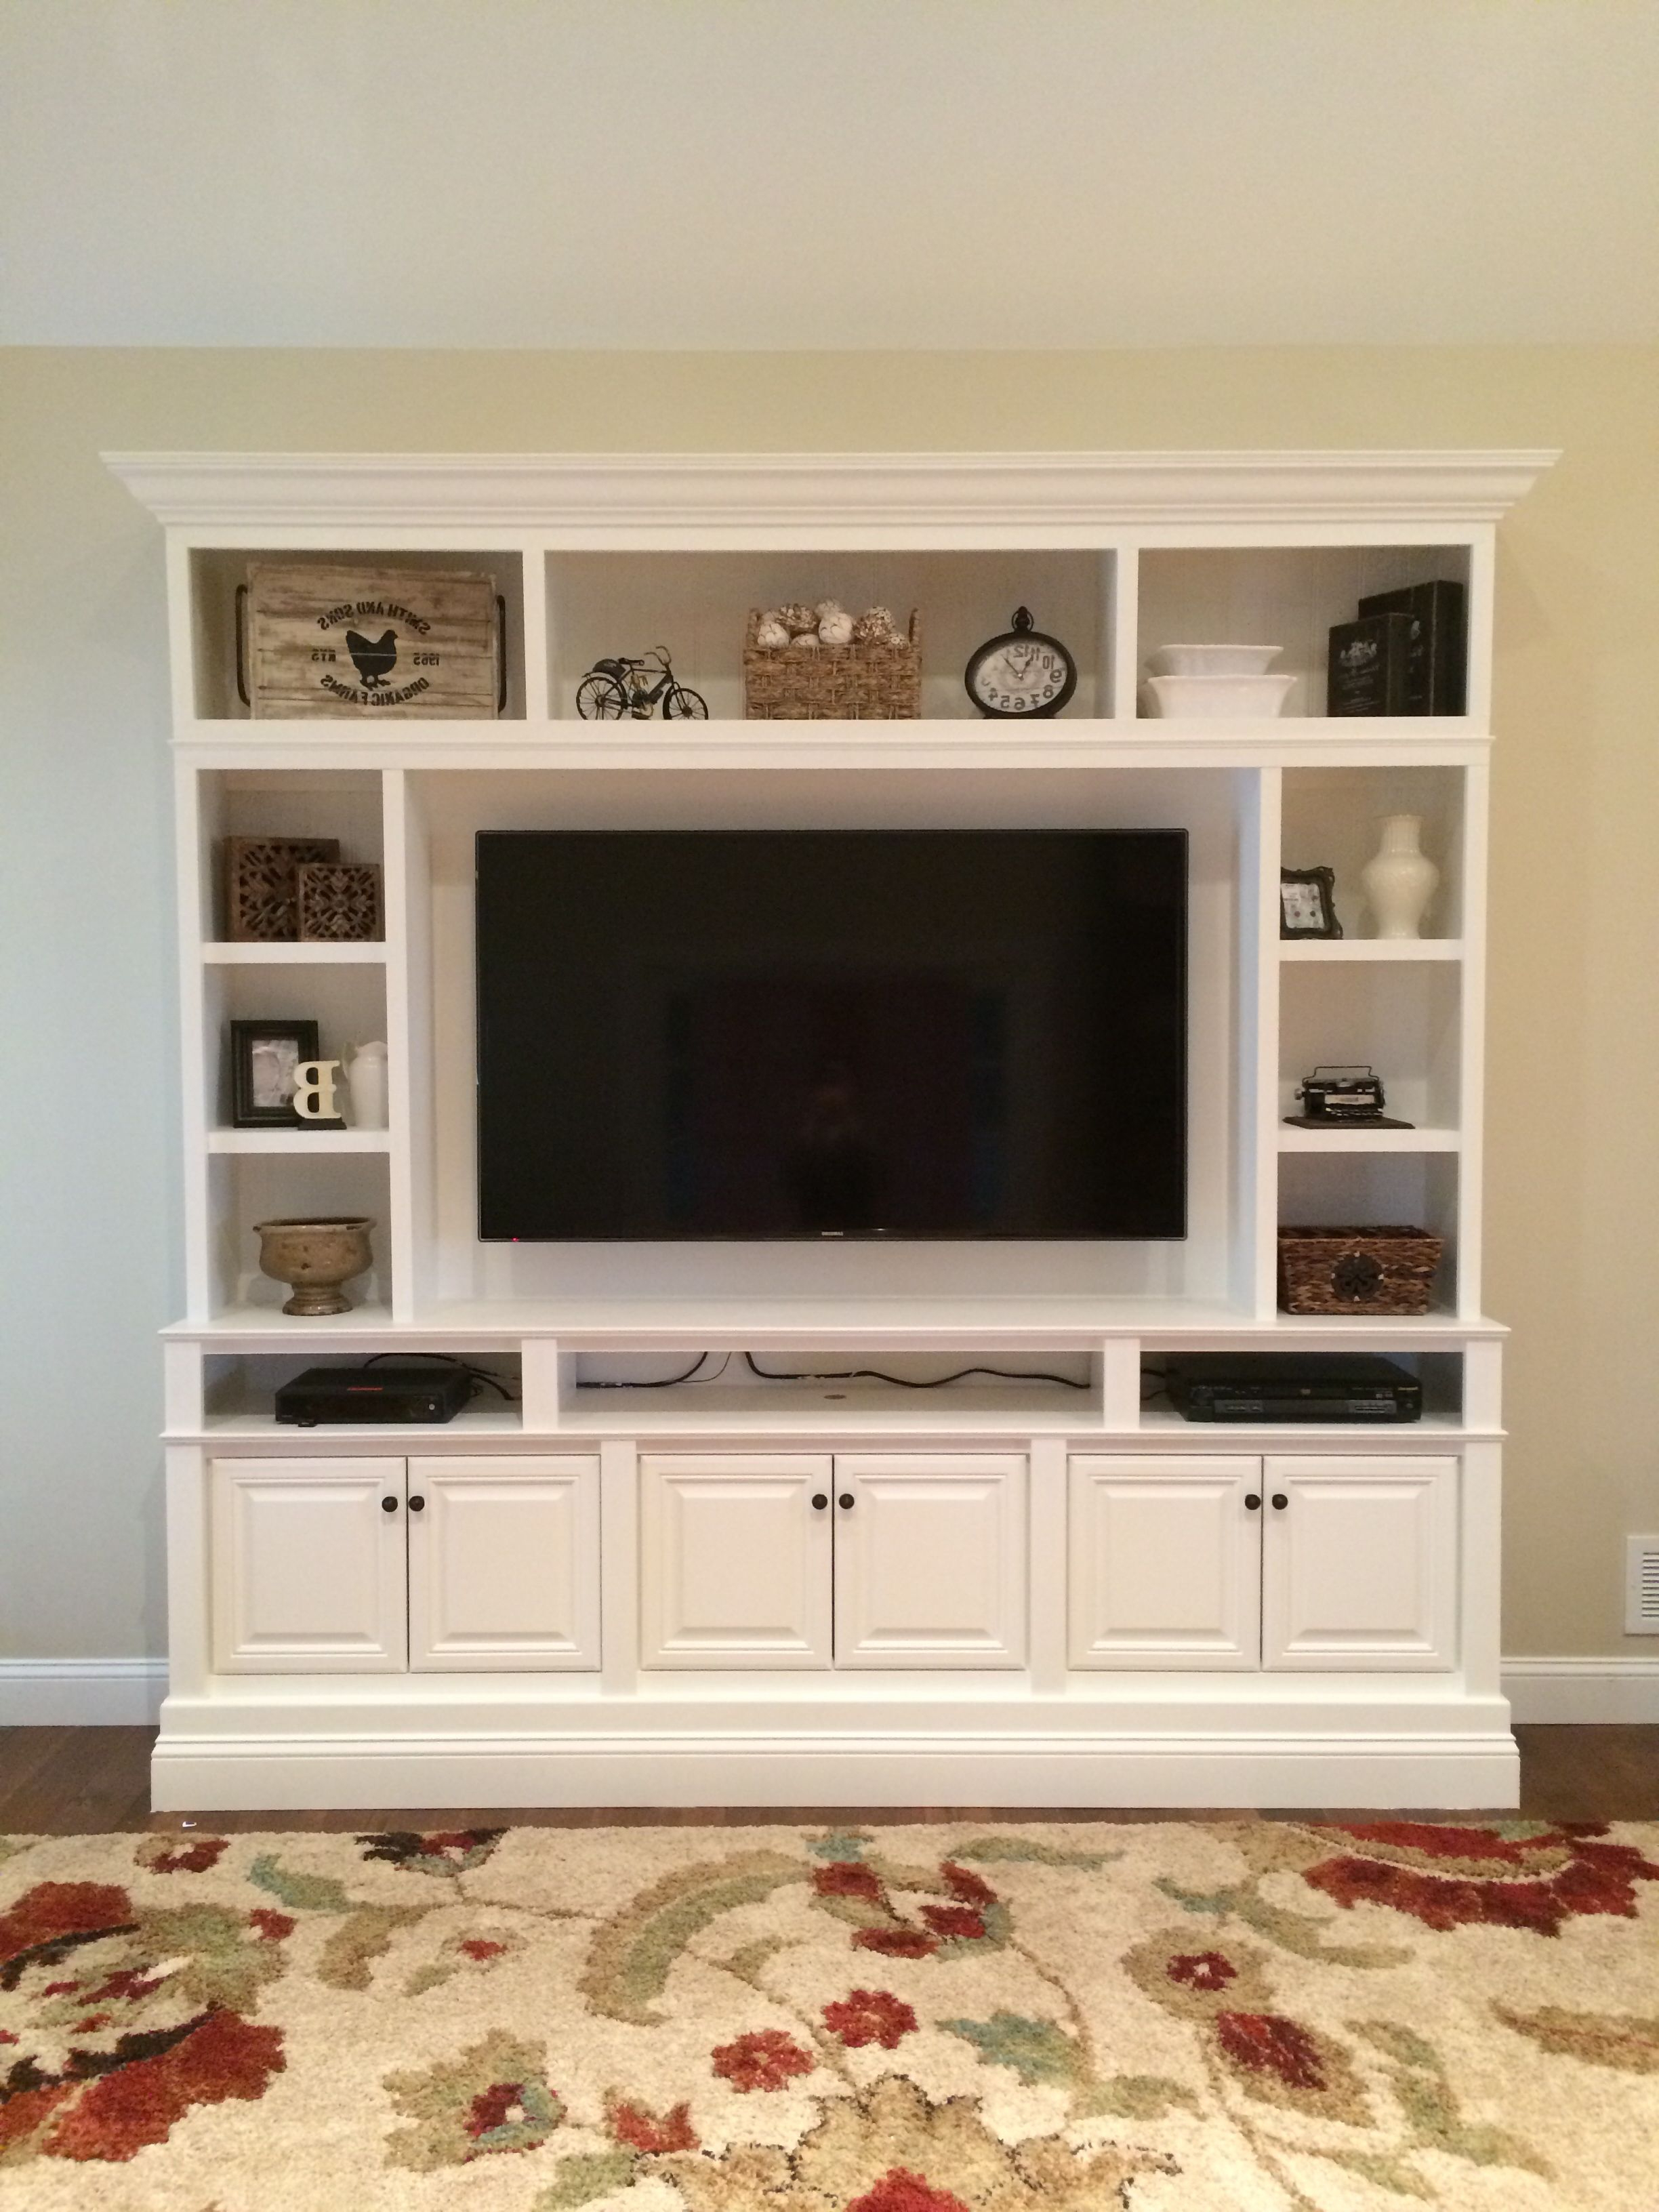 17 Diy Entertainment Center Ideas And Designs For Your New Home Throughout Popular Tv Entertainment Wall Units (Gallery 19 of 20)